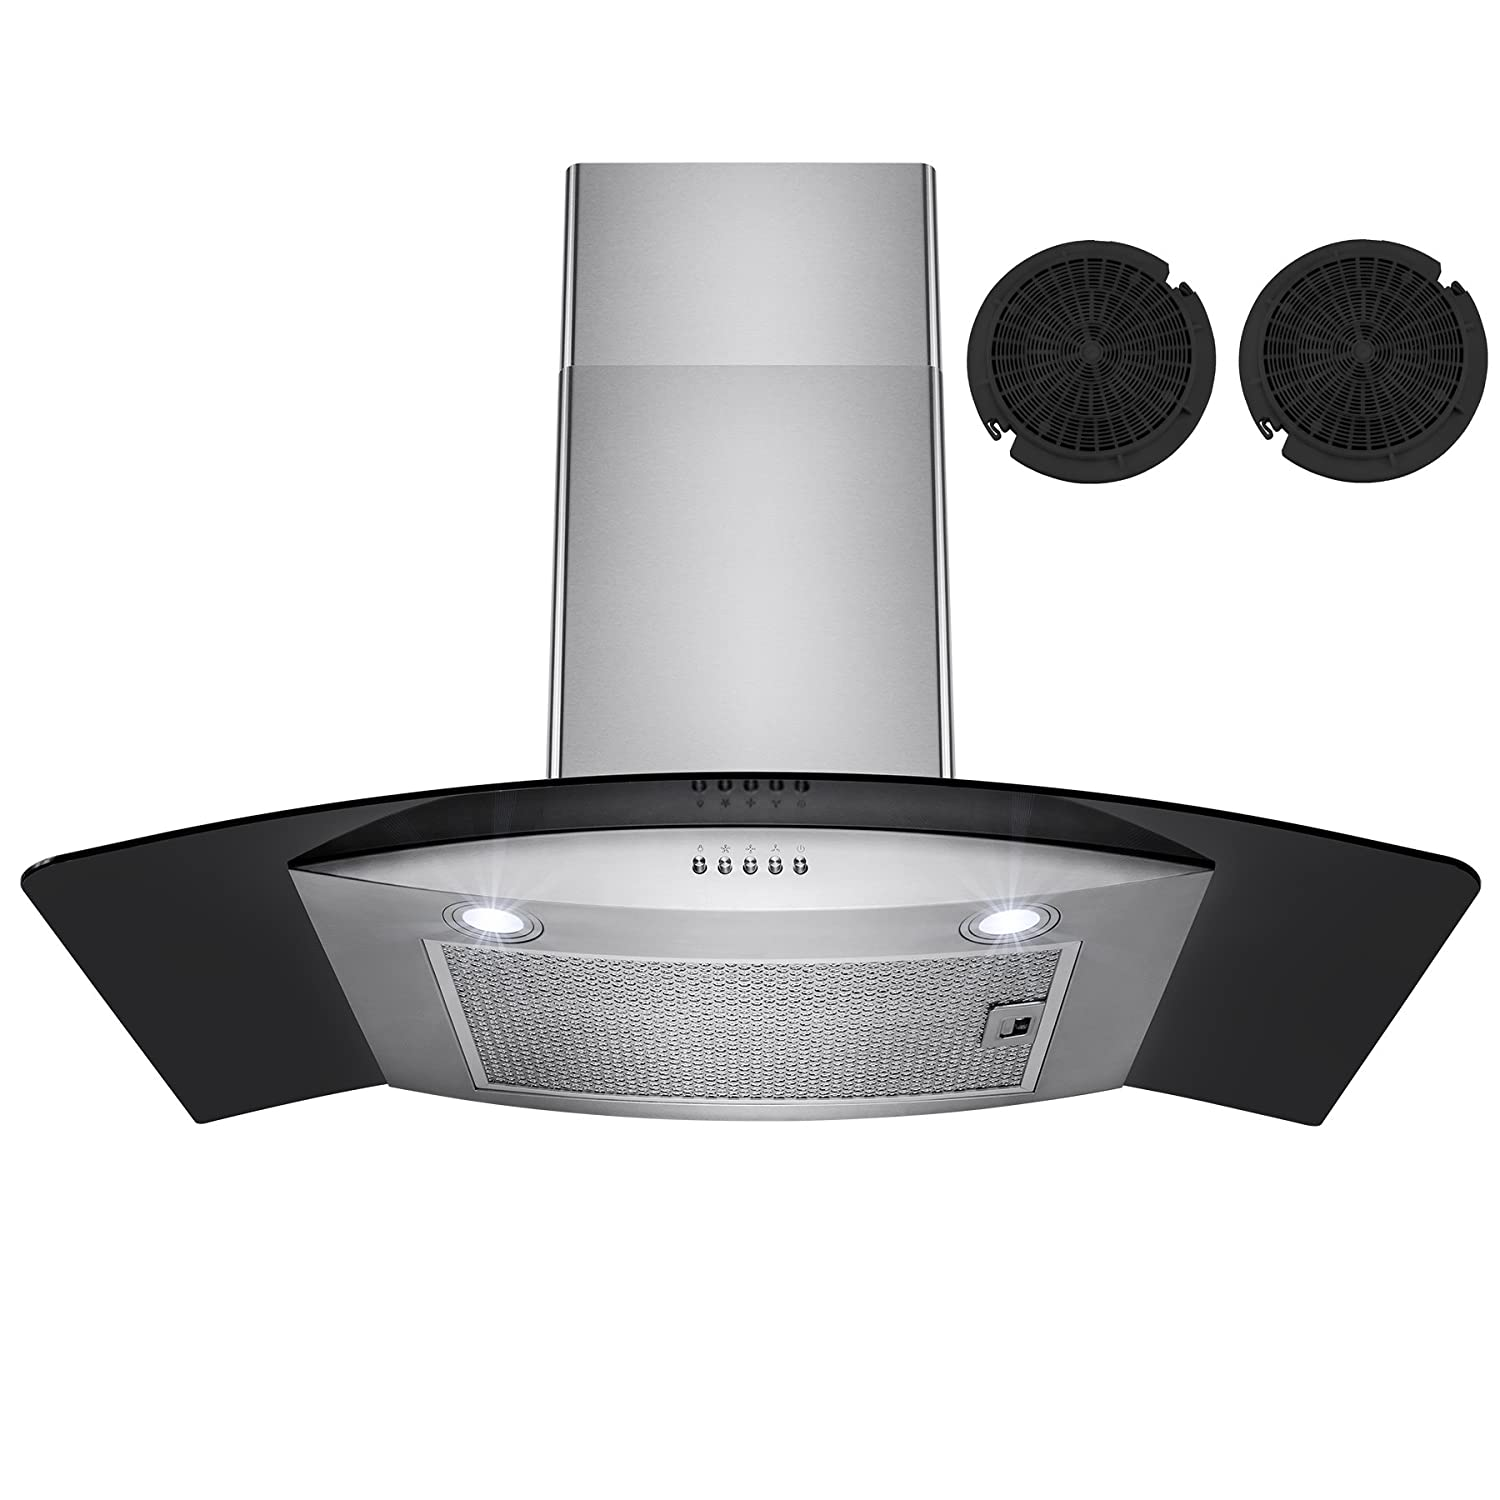 Firebird 30 European Style Wall Mount Stainless Steel Ductless Range Hood Vent W/ Touch Panel Control Free Carbon Filters FB-RH0192